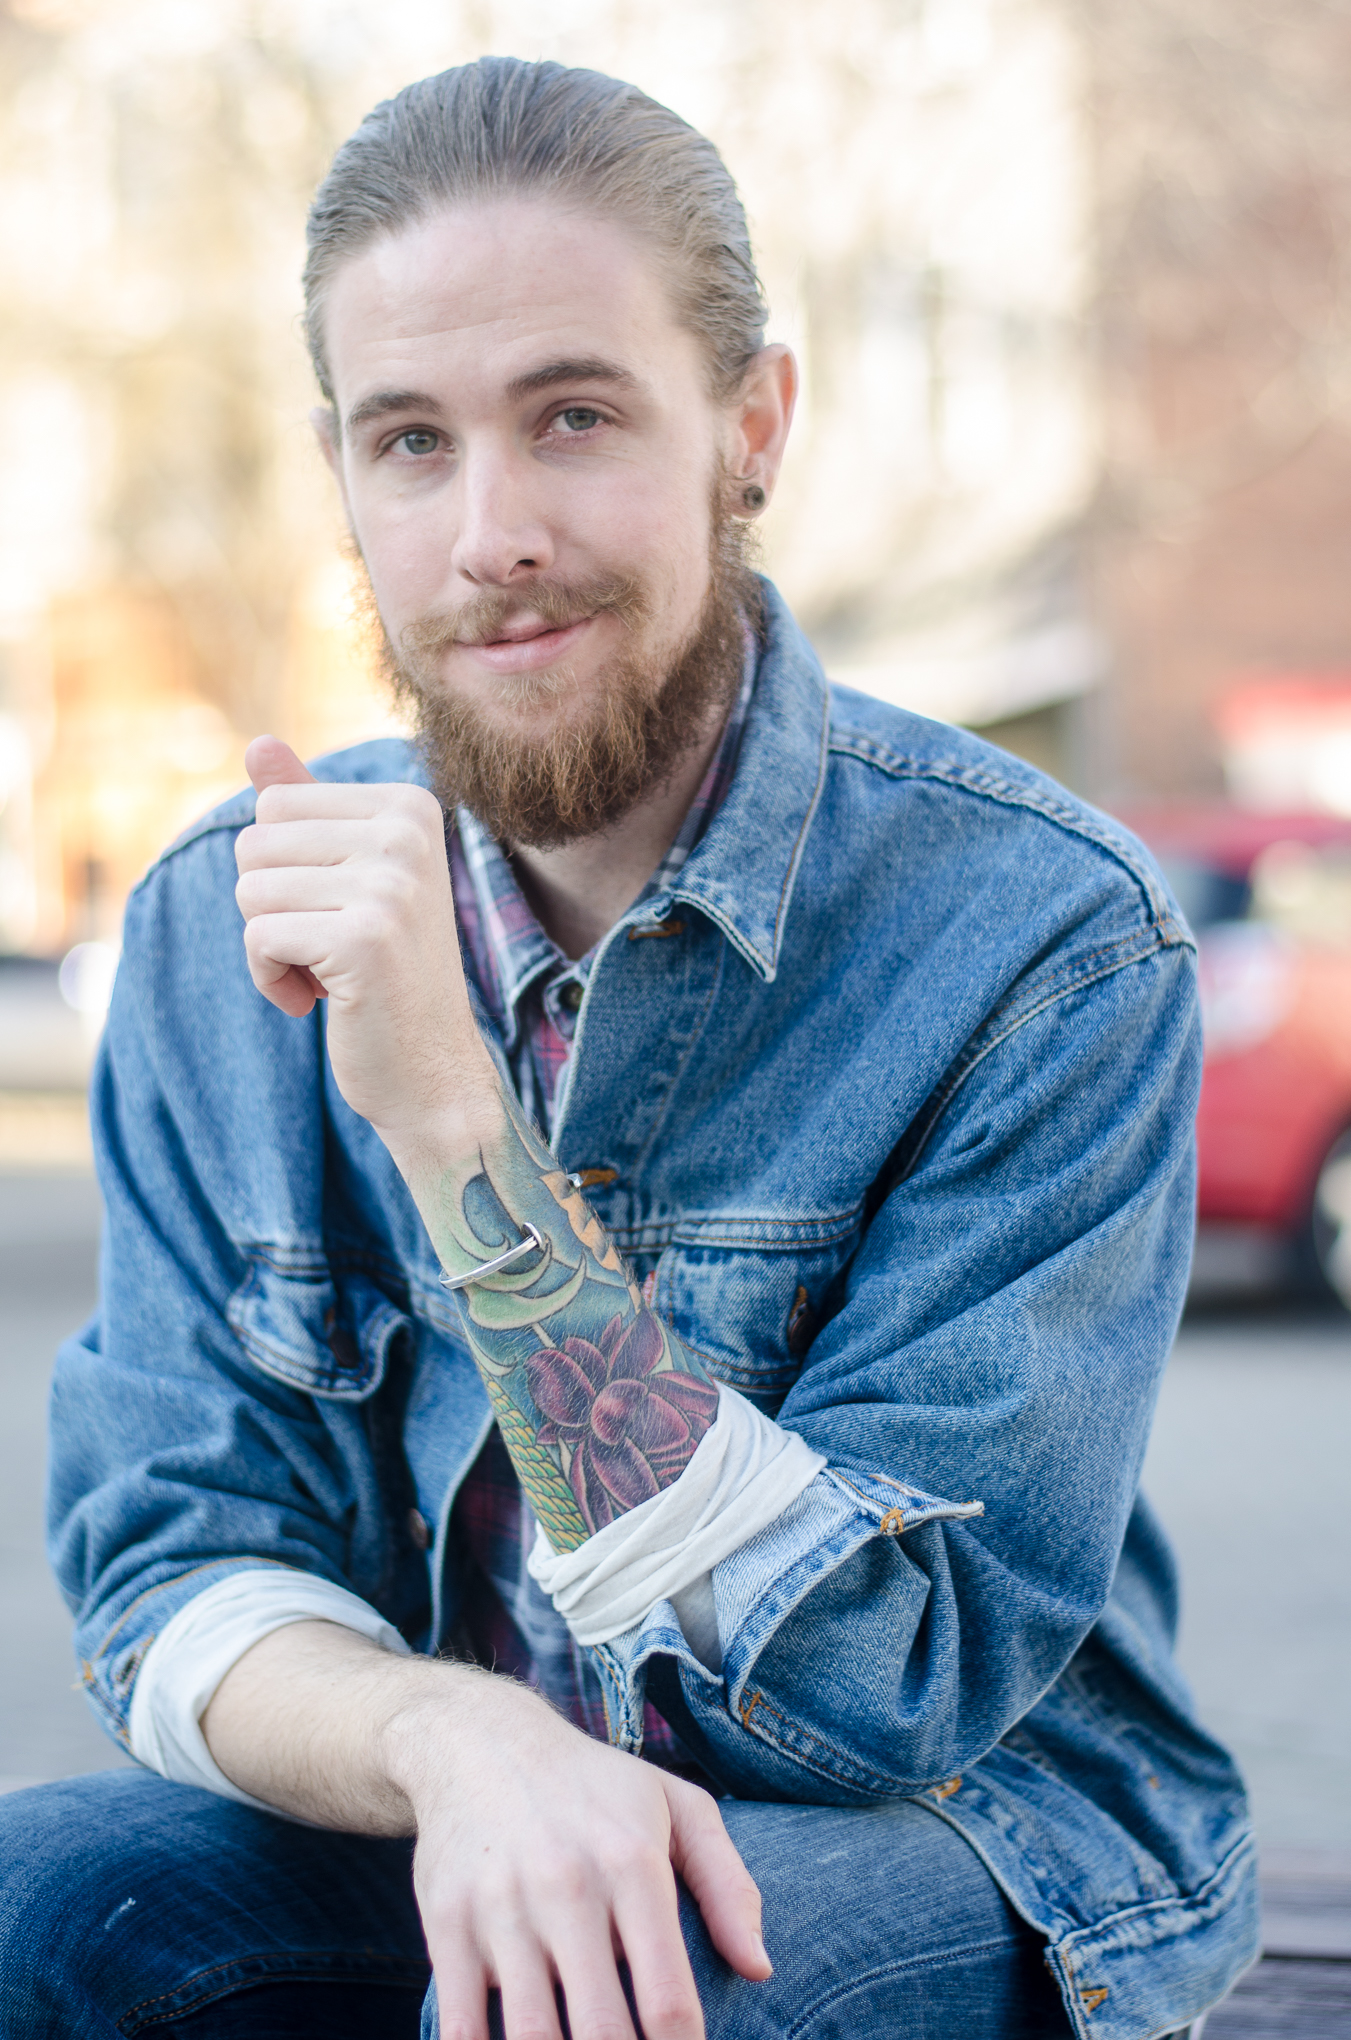 The Kentucky Gent, a Louisville, Kentucky based men's fashion and lifestyle blogger, wearing Levi's Denim Jacket and Jeans, Plaid Shirt, Giles and Brother Cuff, SPY Optic Sunglasses, and Trask Boots.